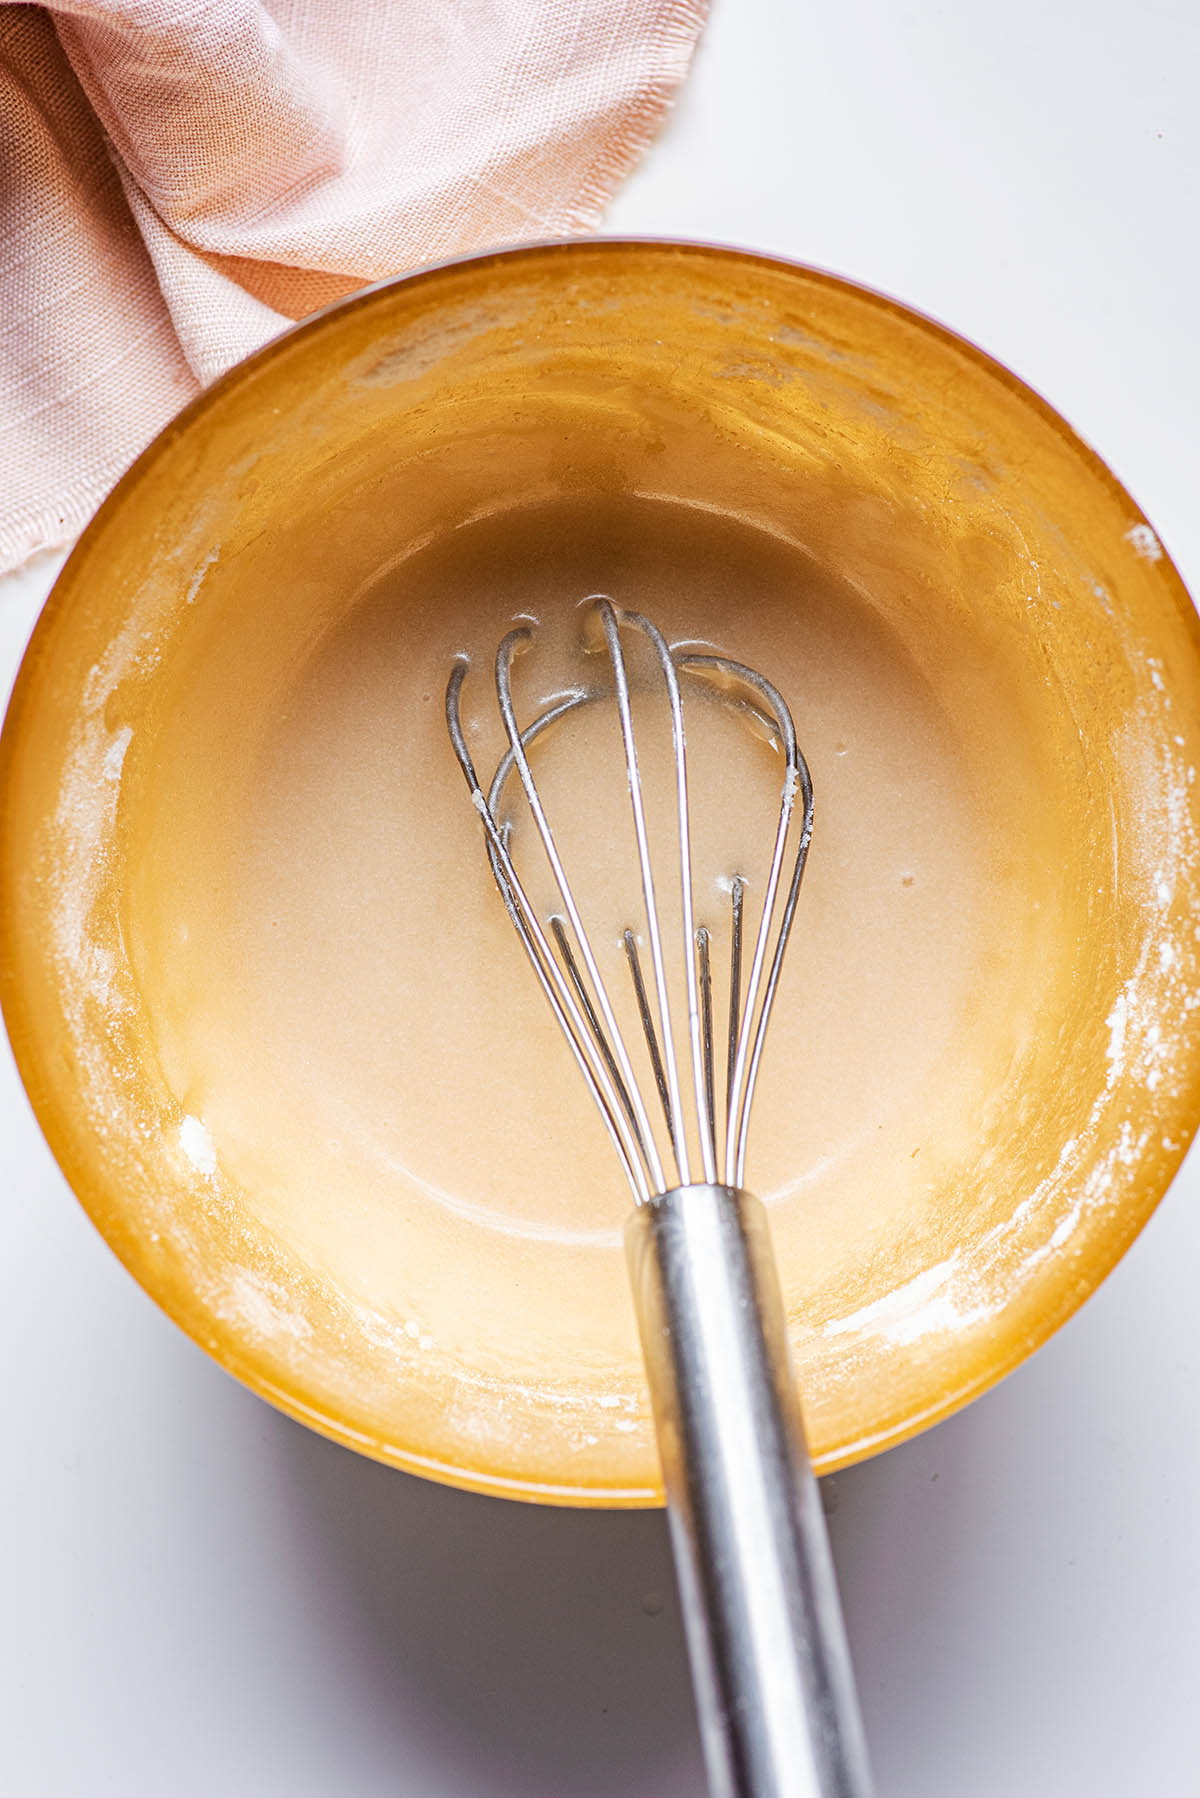 Glaze mixed with a whisk in the bowl.